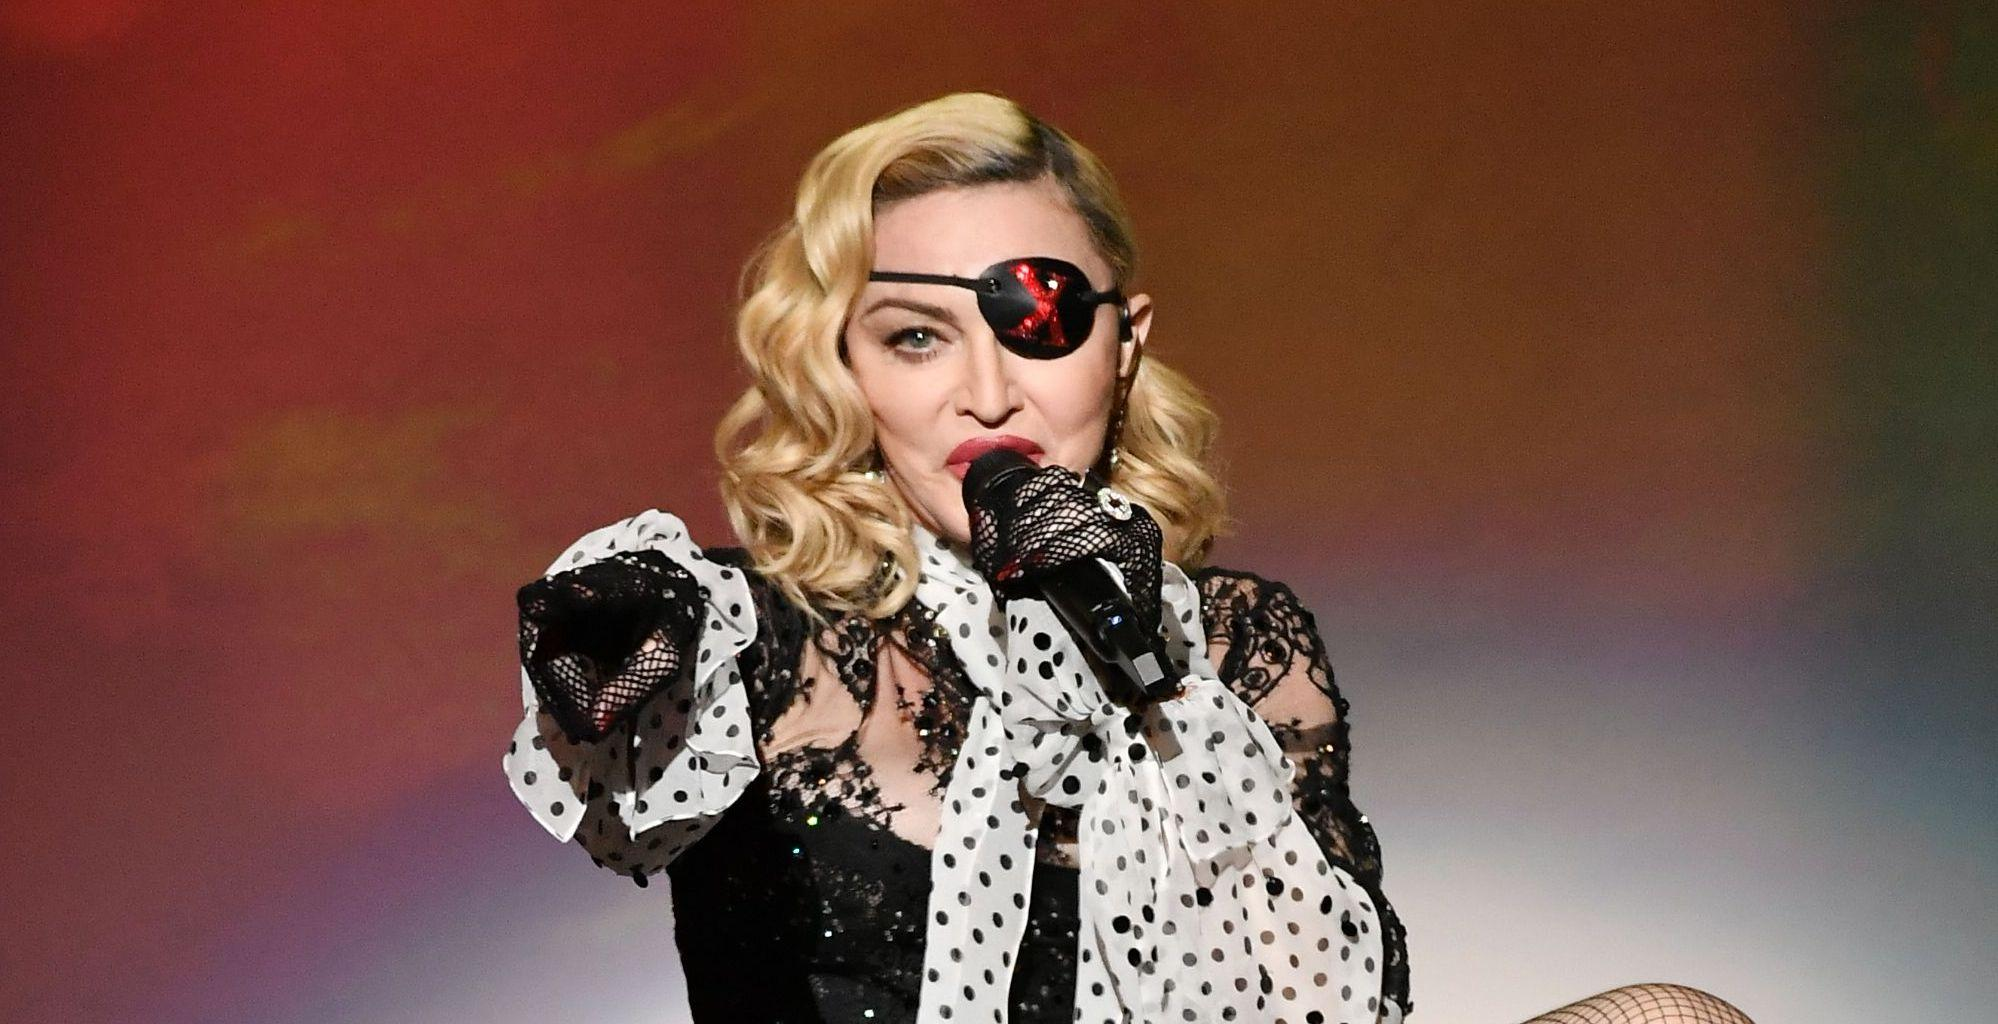 Madonna Gets Criticized For 'Insensitive' George Floyd Tribute - 'Completely Tone-Deaf!'